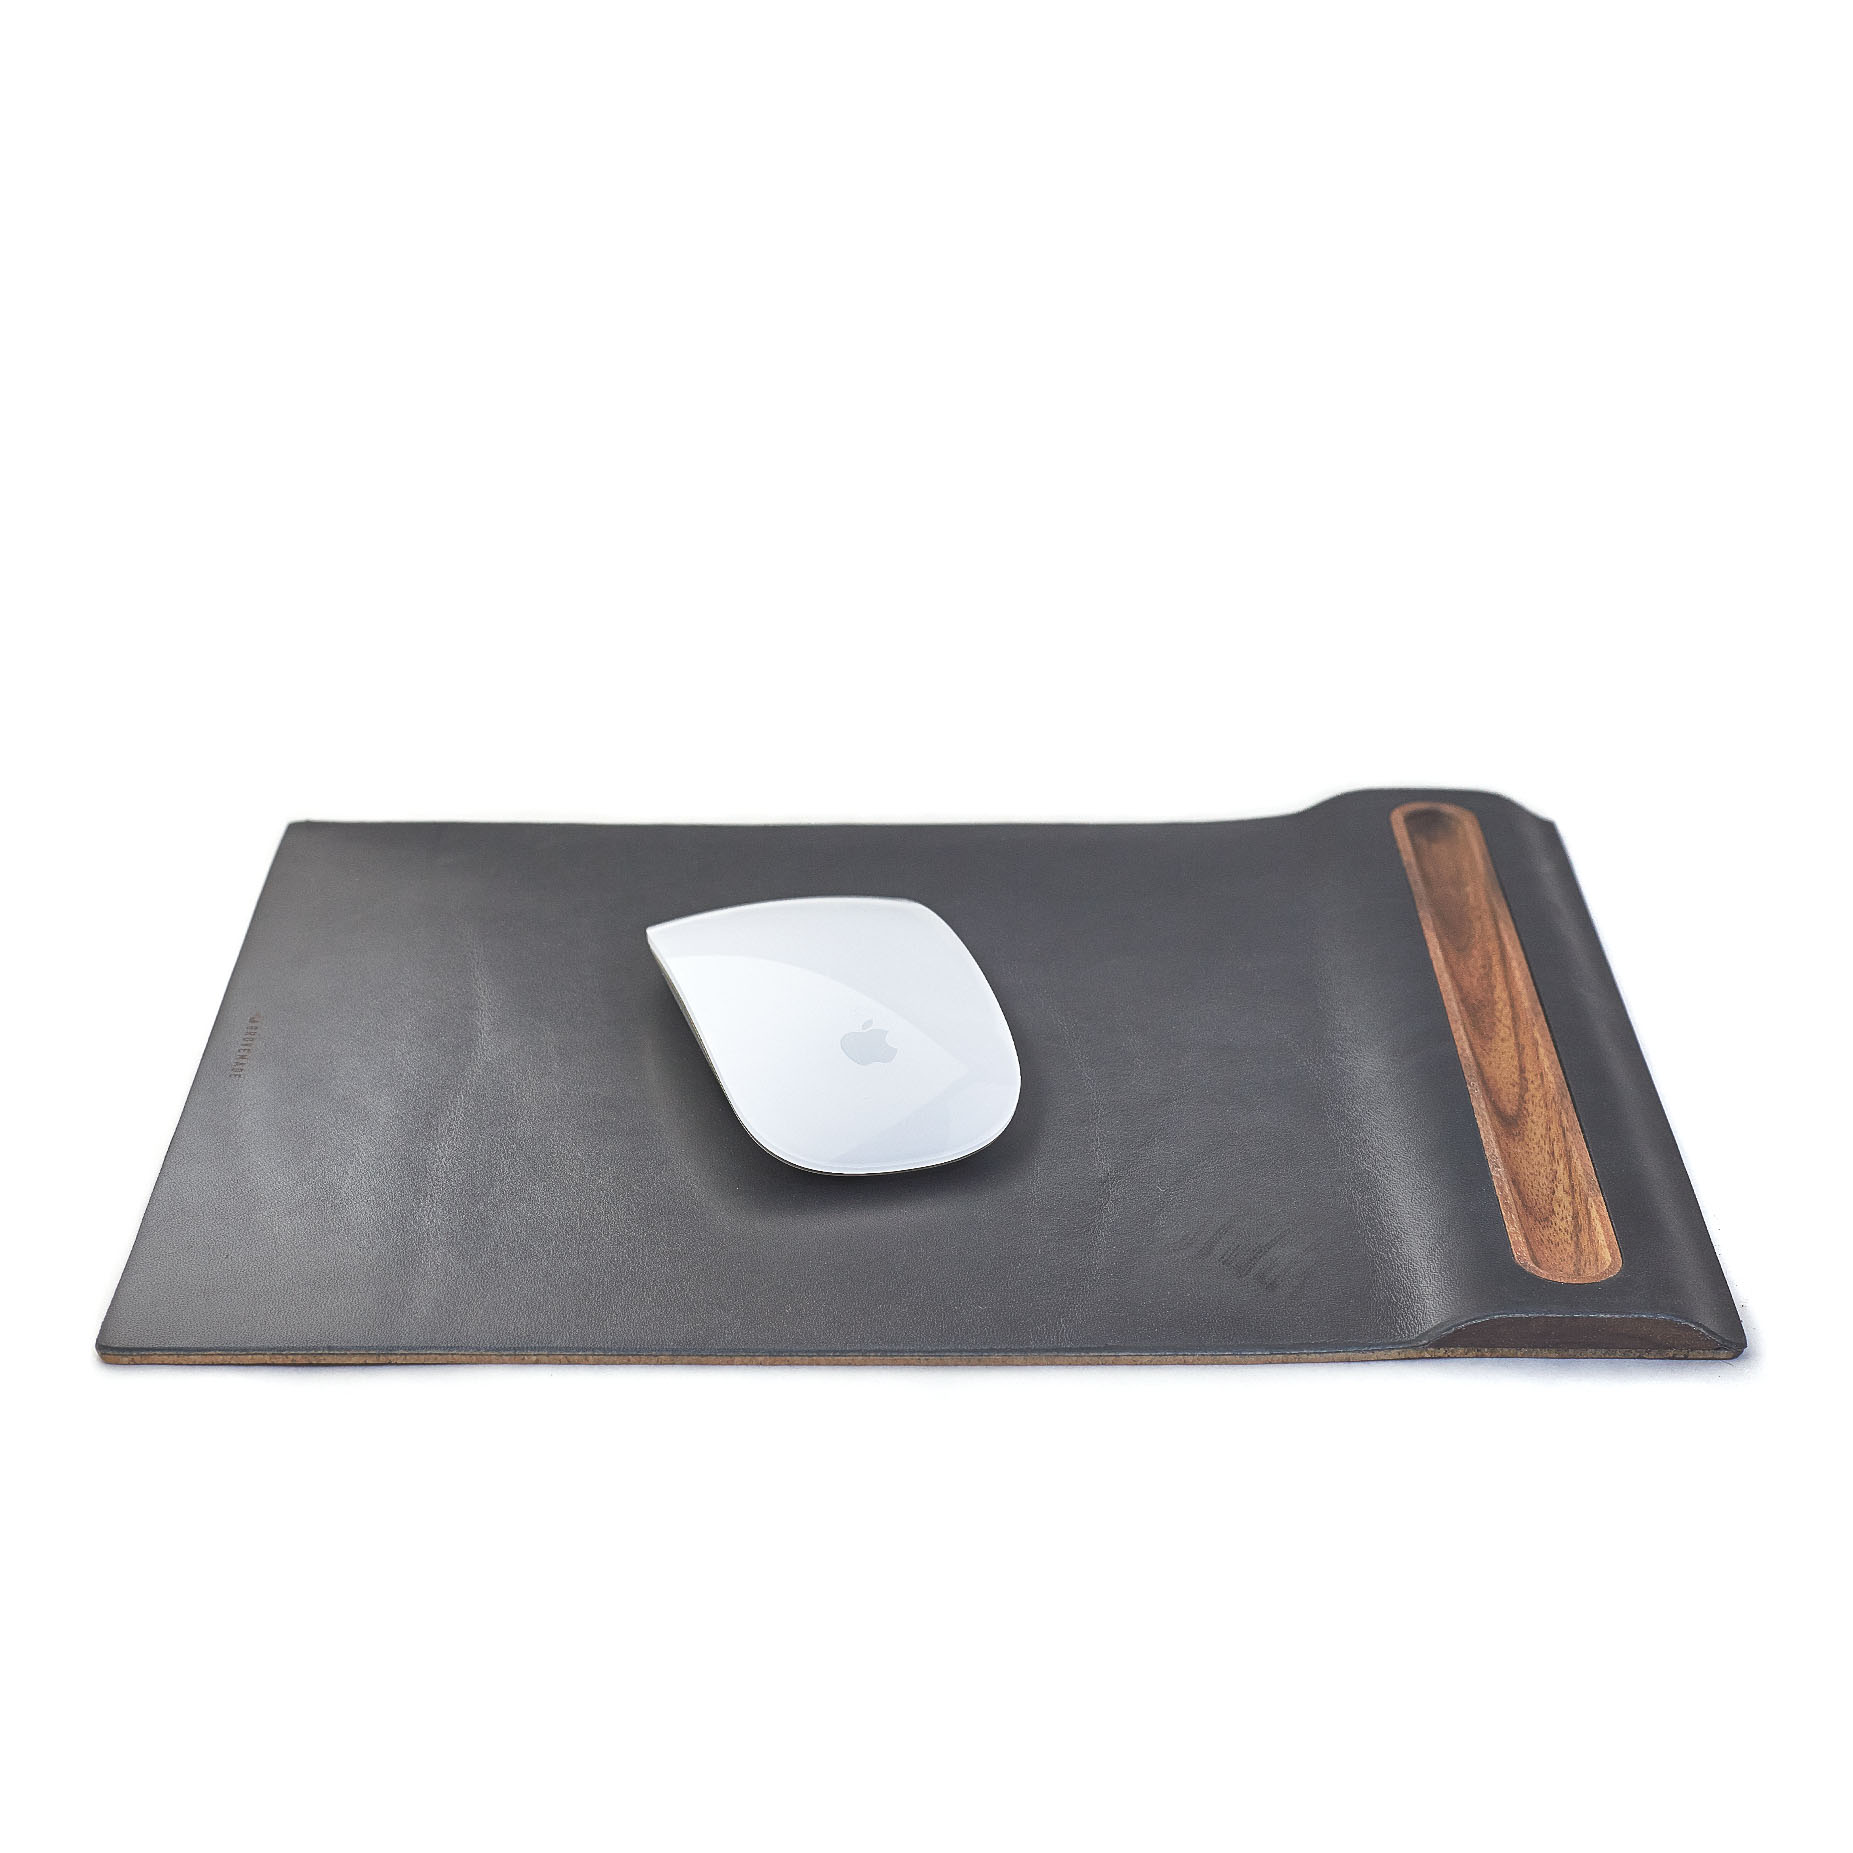 Leather & Walnut Mouse Pad -